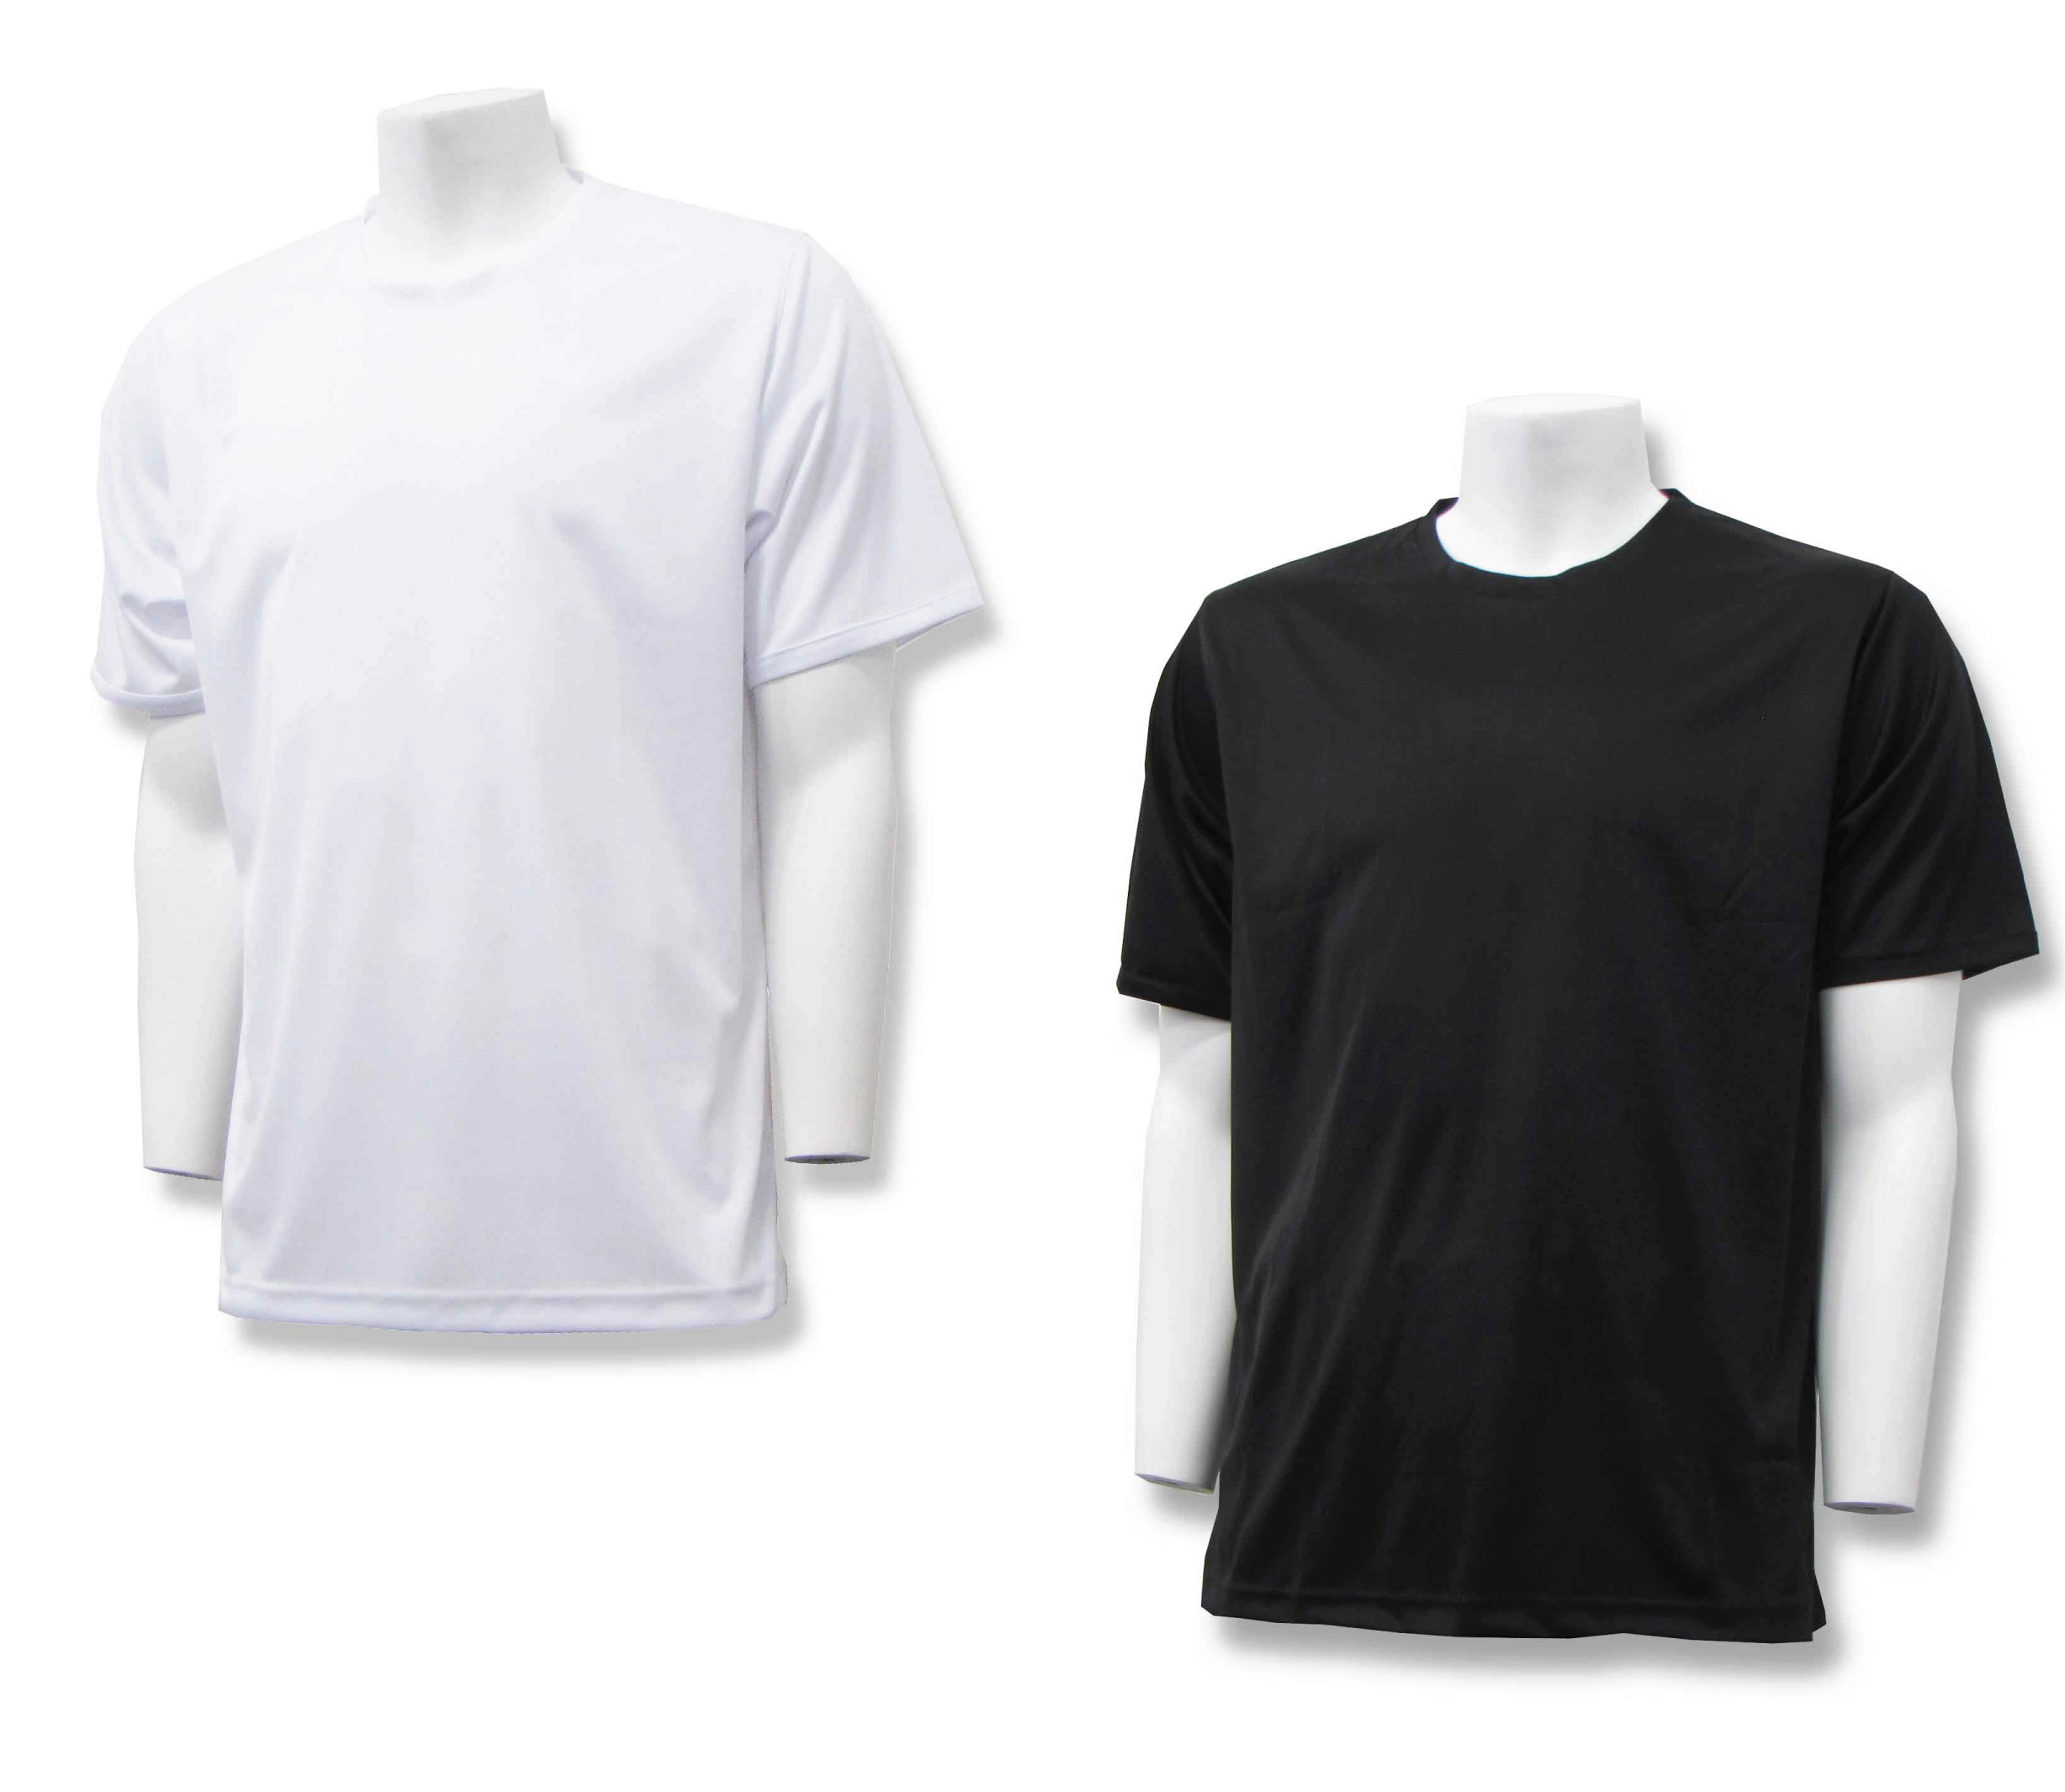 LiteTech workout and training shirts in black and white by Code Four Athletics